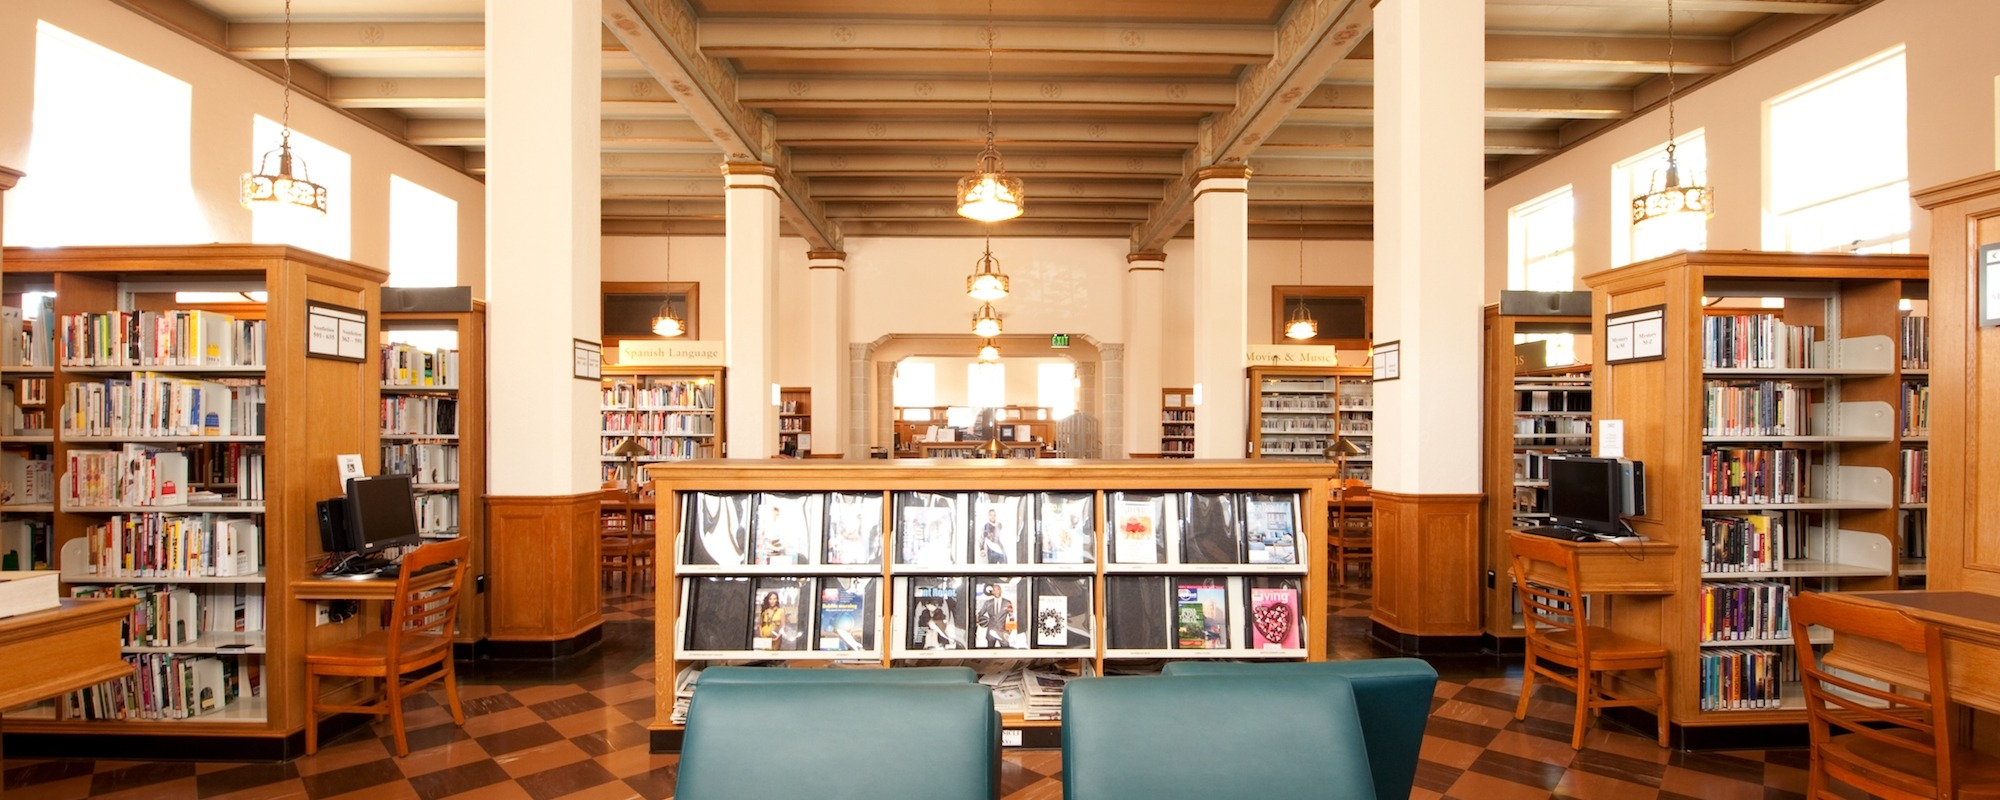 Bernal Heights Branch Library